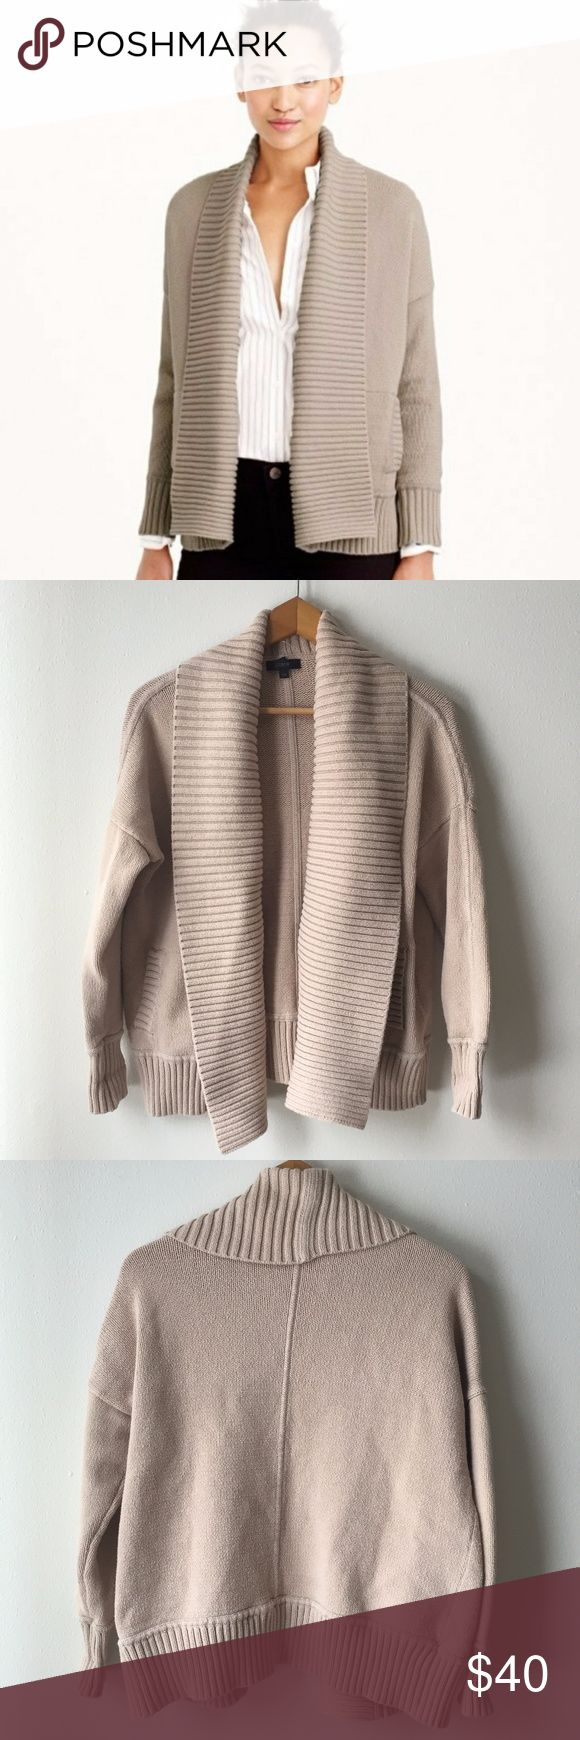 """J. Crew Chunky Trim Open Cardigan Sweater This cozy cardigan boasts an easy silhouette with a shawl collar and a chunky rib knit. A superwarm pick that's polished enough for work but comfy enough for lazy Sundays with the Times—it's the one you'll reach for again and again.  -Cotton/nylon. -Rib trim at neck, cuffs and hem. -Patch pockets. -Loose fit. -Hits slightly below hip.  Good condition, no flaws.  Approximate Measurements Flat: Pit to Pit: 22"""", Should to Hem: 25"""" J. Crew Sweaters…"""